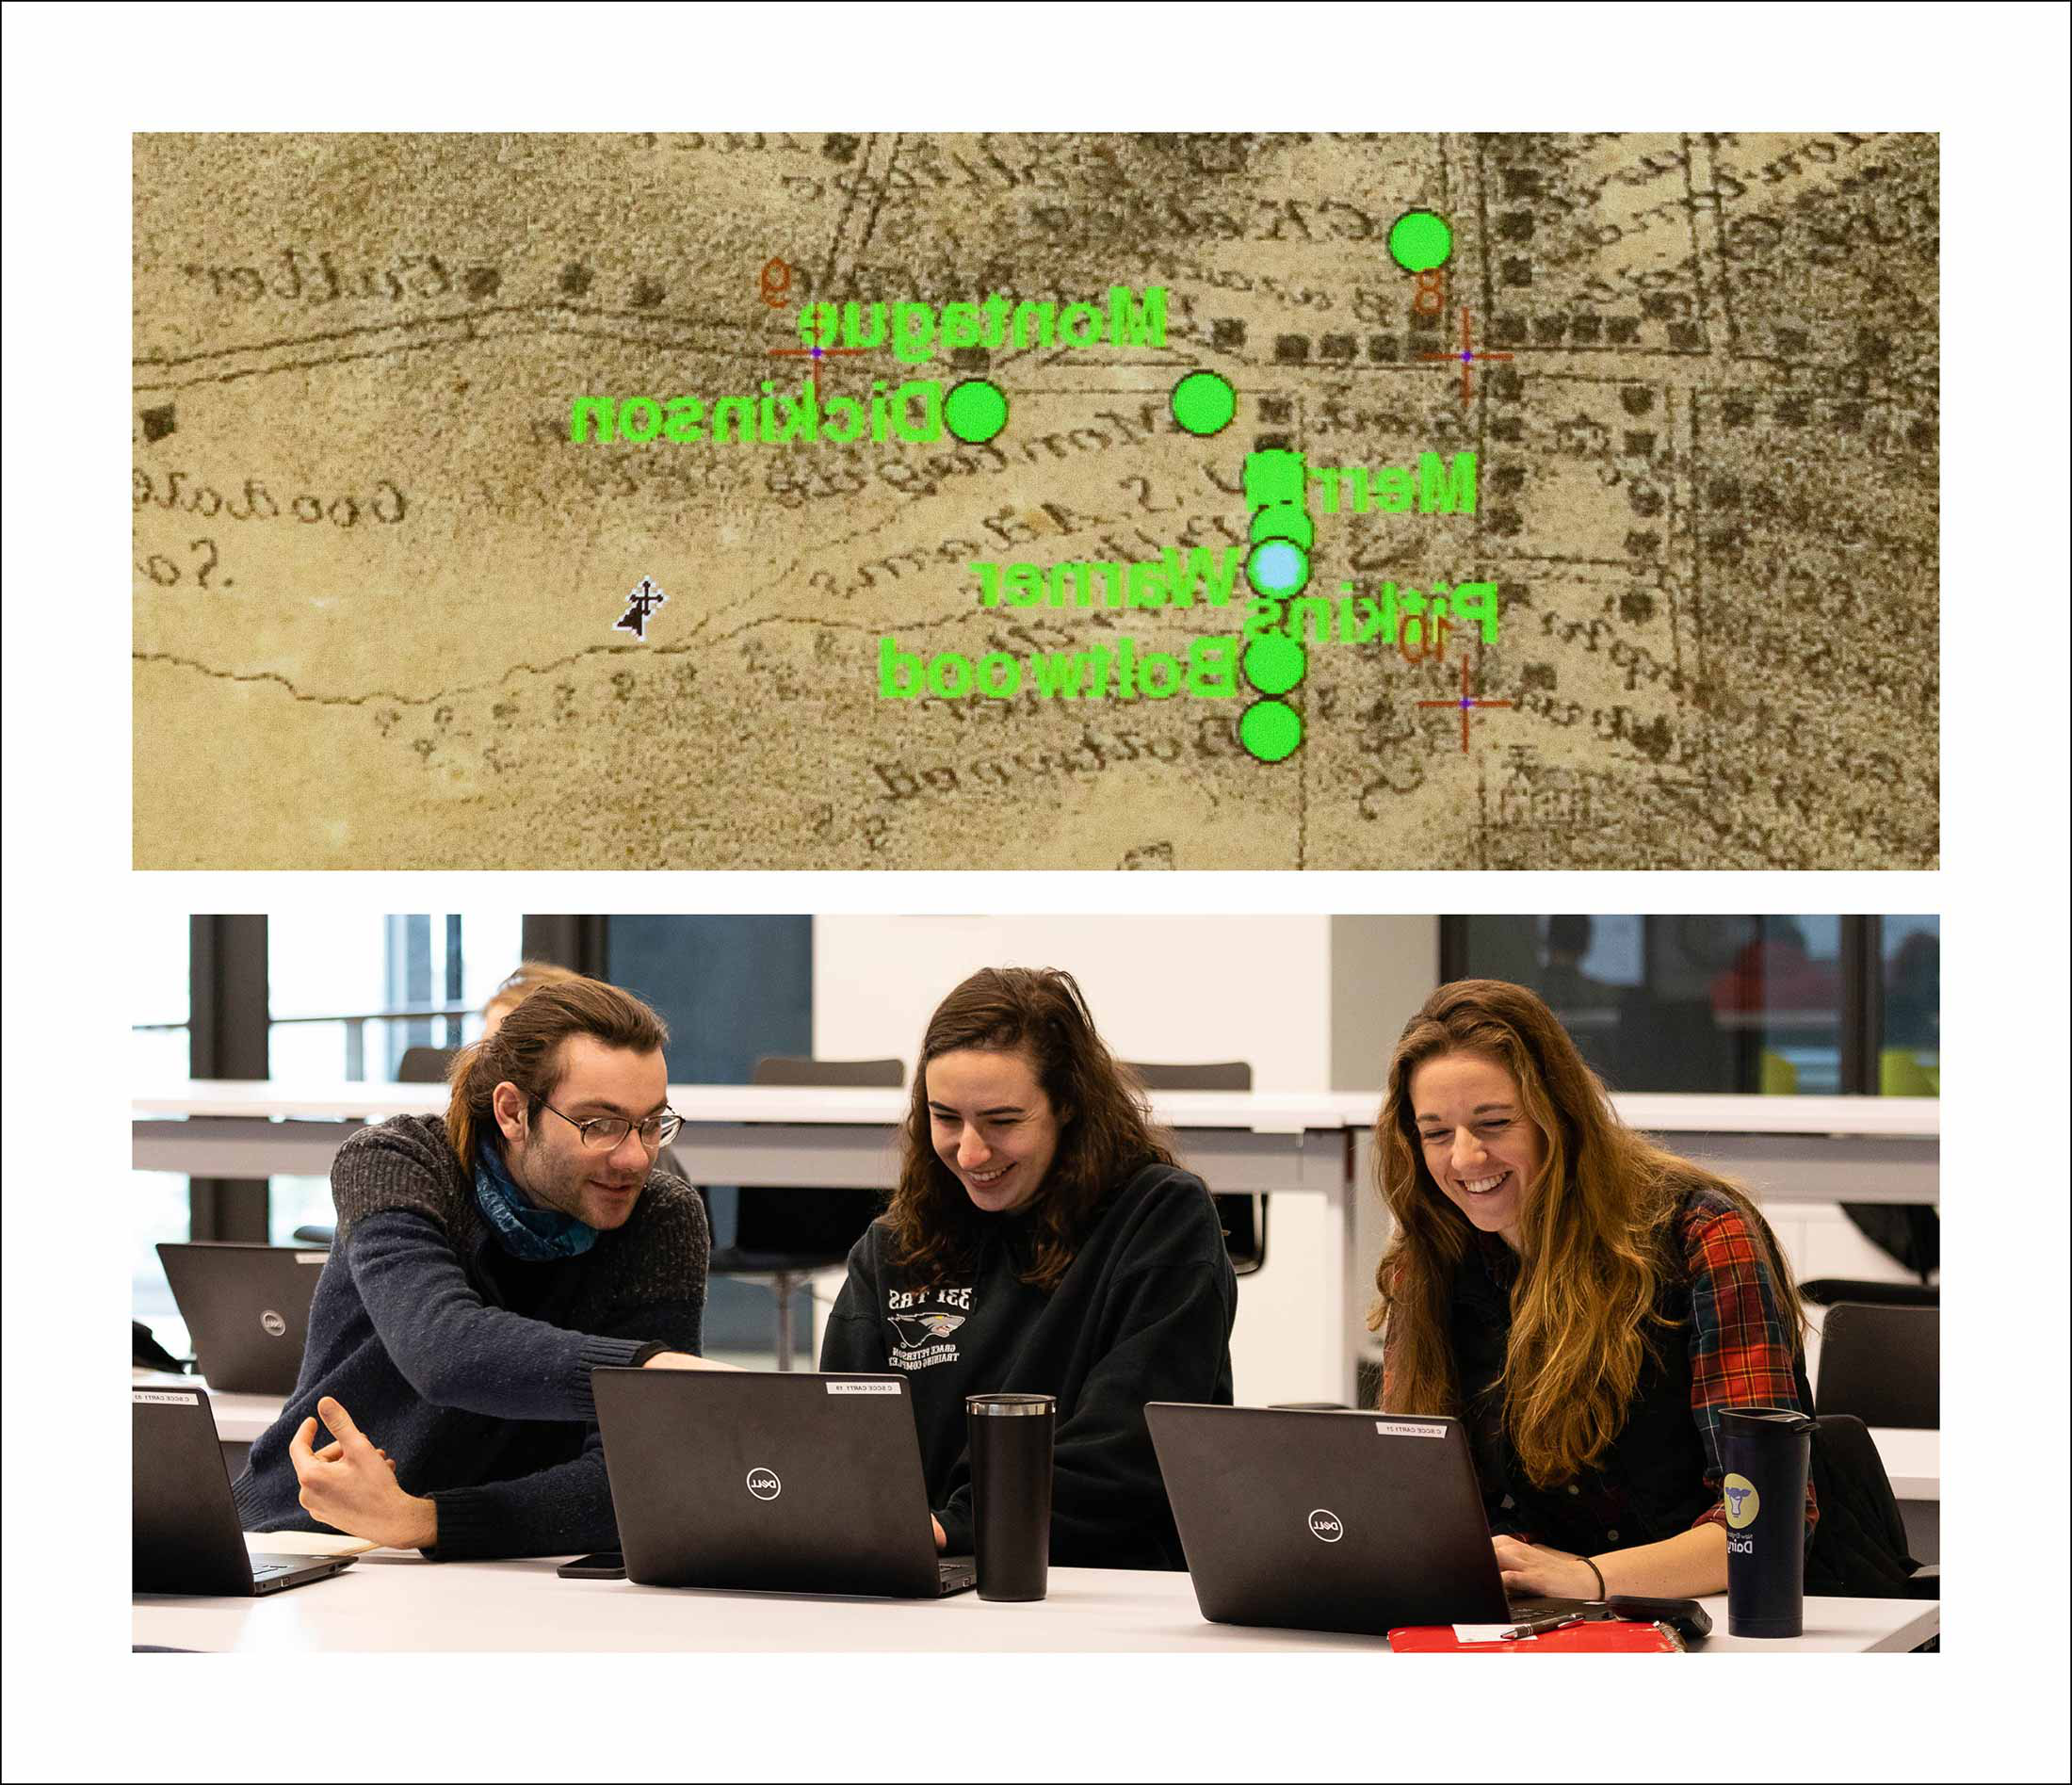 Three people gather around several laptops as well as an image of an old map of Amherst, Ma.